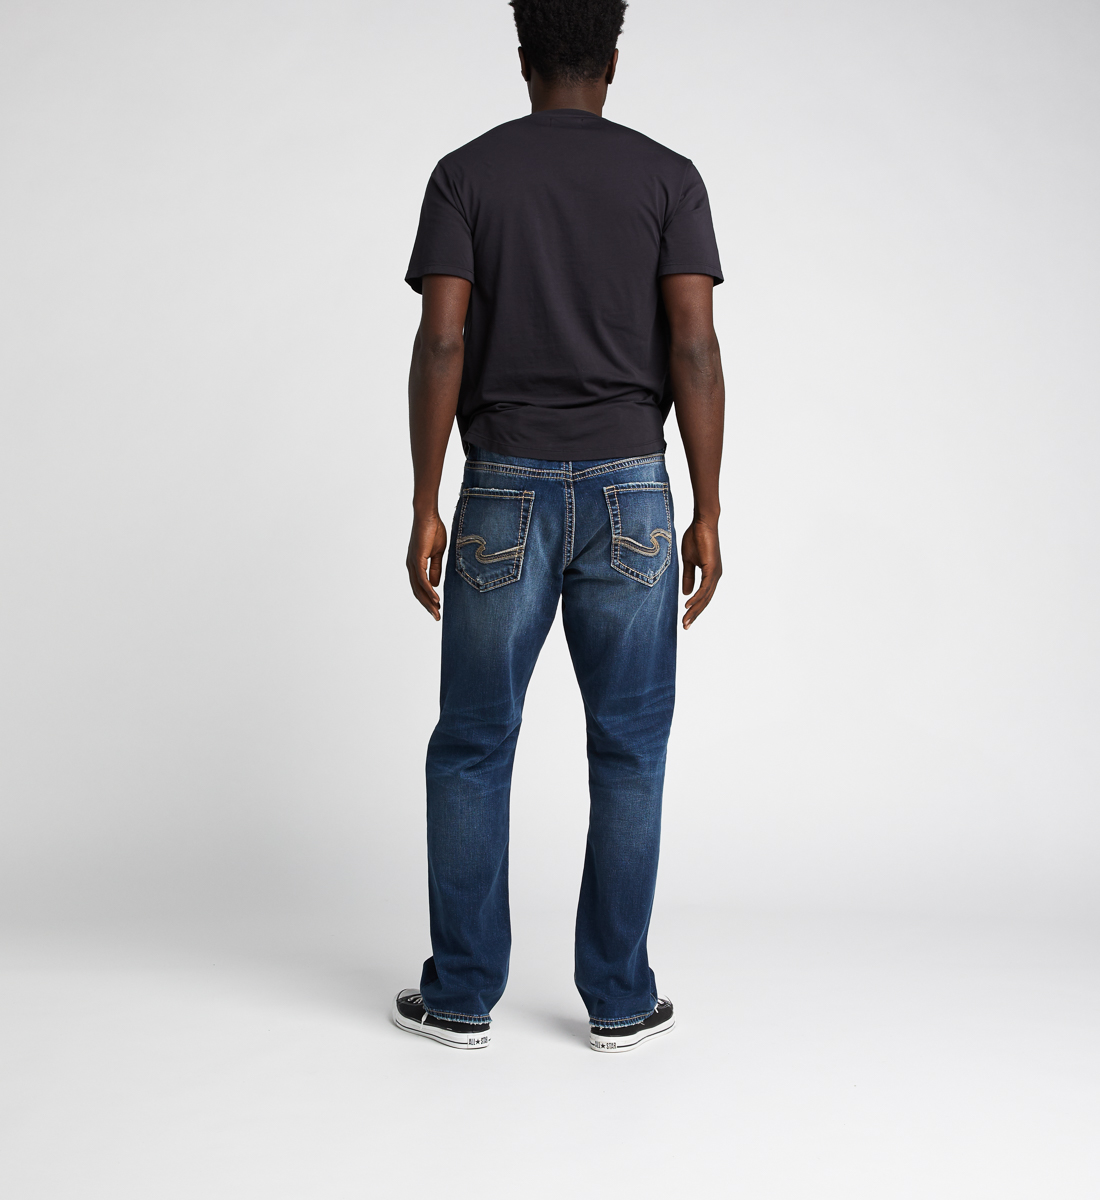 Grayson Easy Fit Straight Jeans, Indigo, hi-res